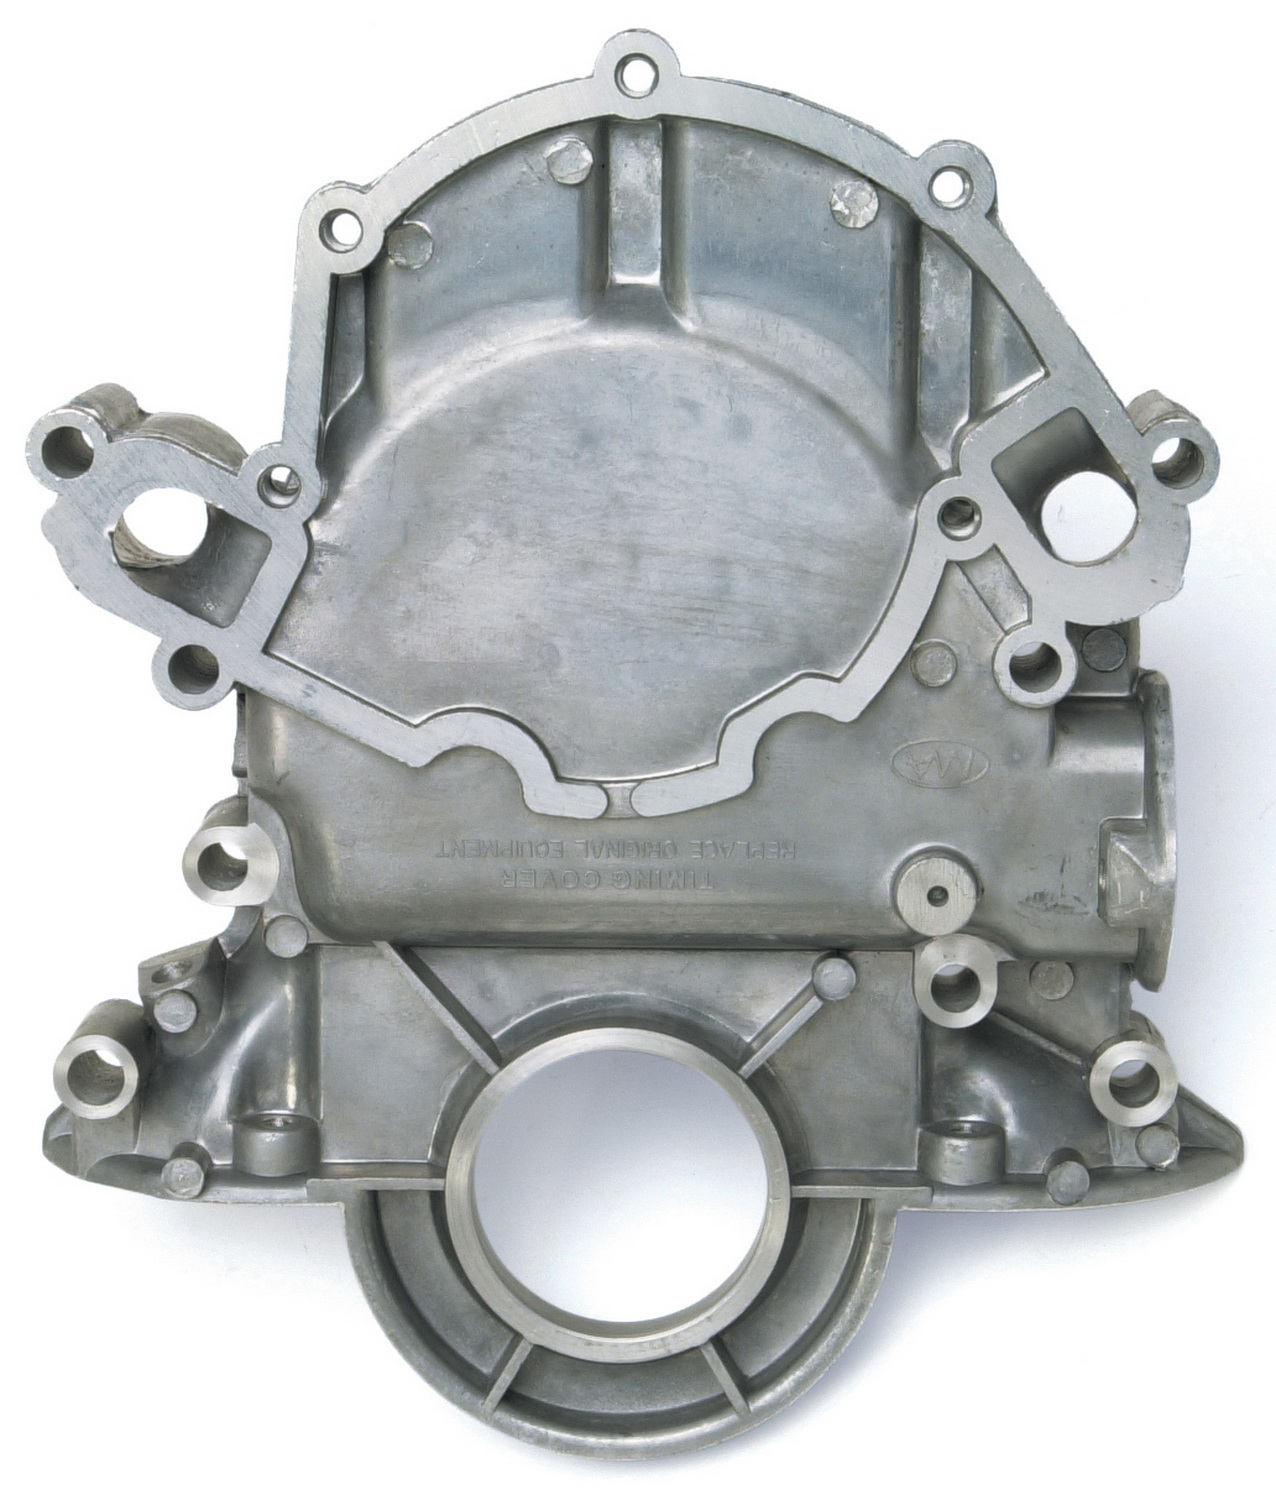 Edelbrock 4250 SBF TIMING COVER, 65-78 289(NON K-CODE) & 302 & 69-87 351W ENGINES